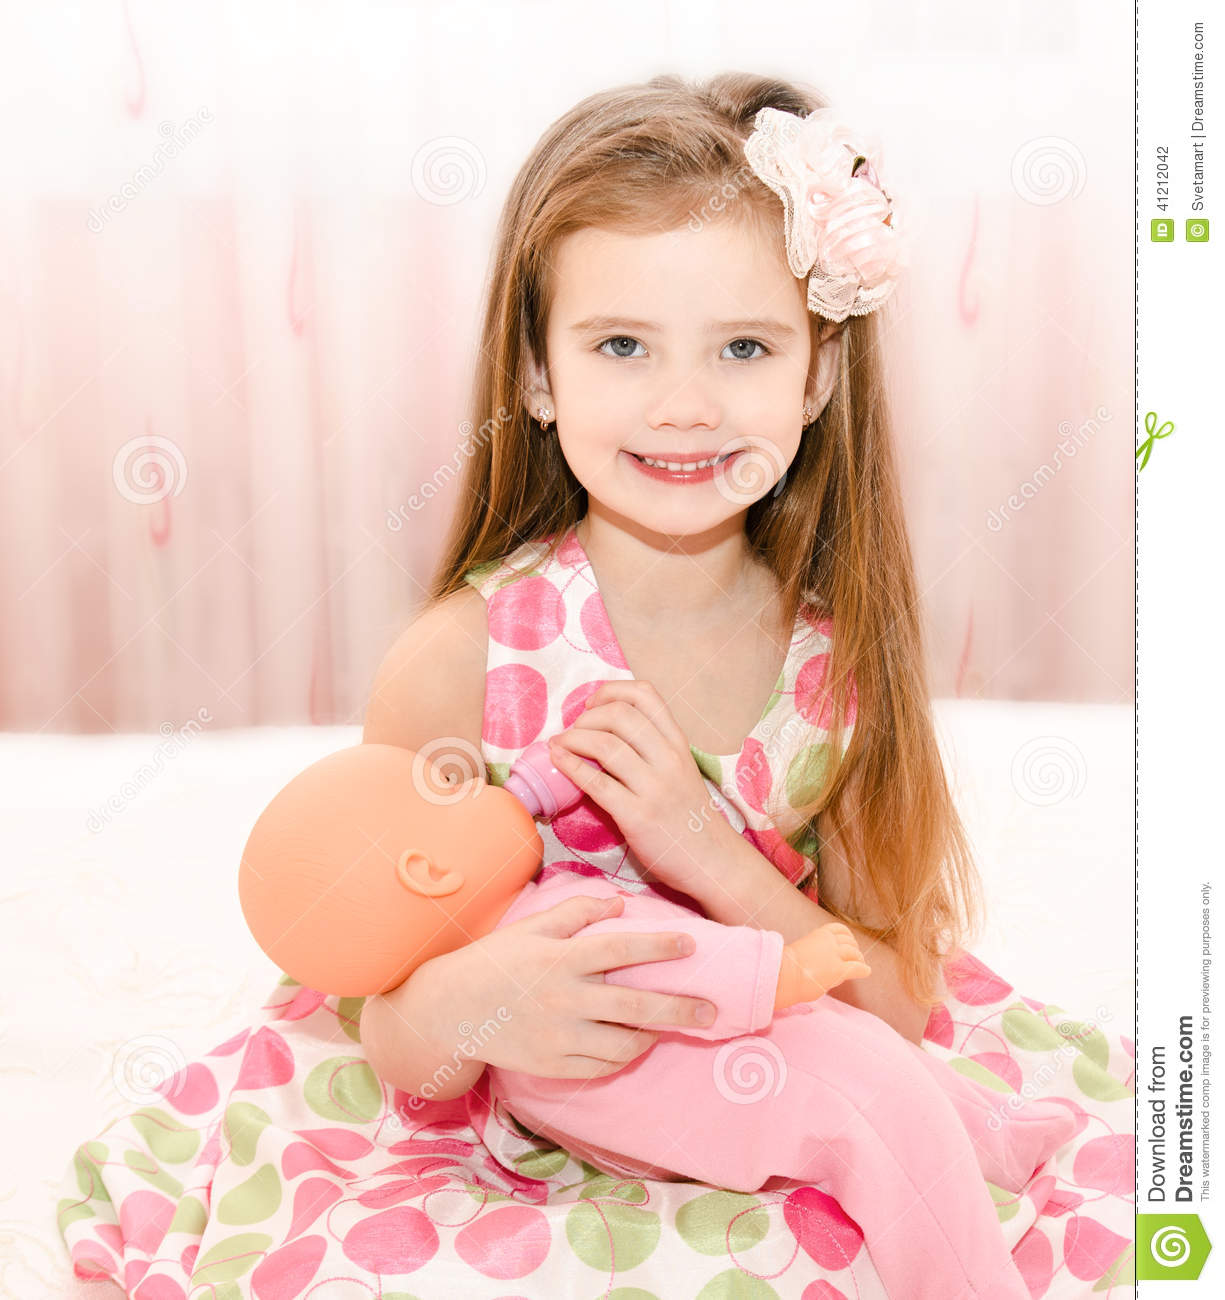 Adorable Little Girl Playing With Beach Toys During: Cute Smiling Little Girl Playing With A Doll Stock Photo